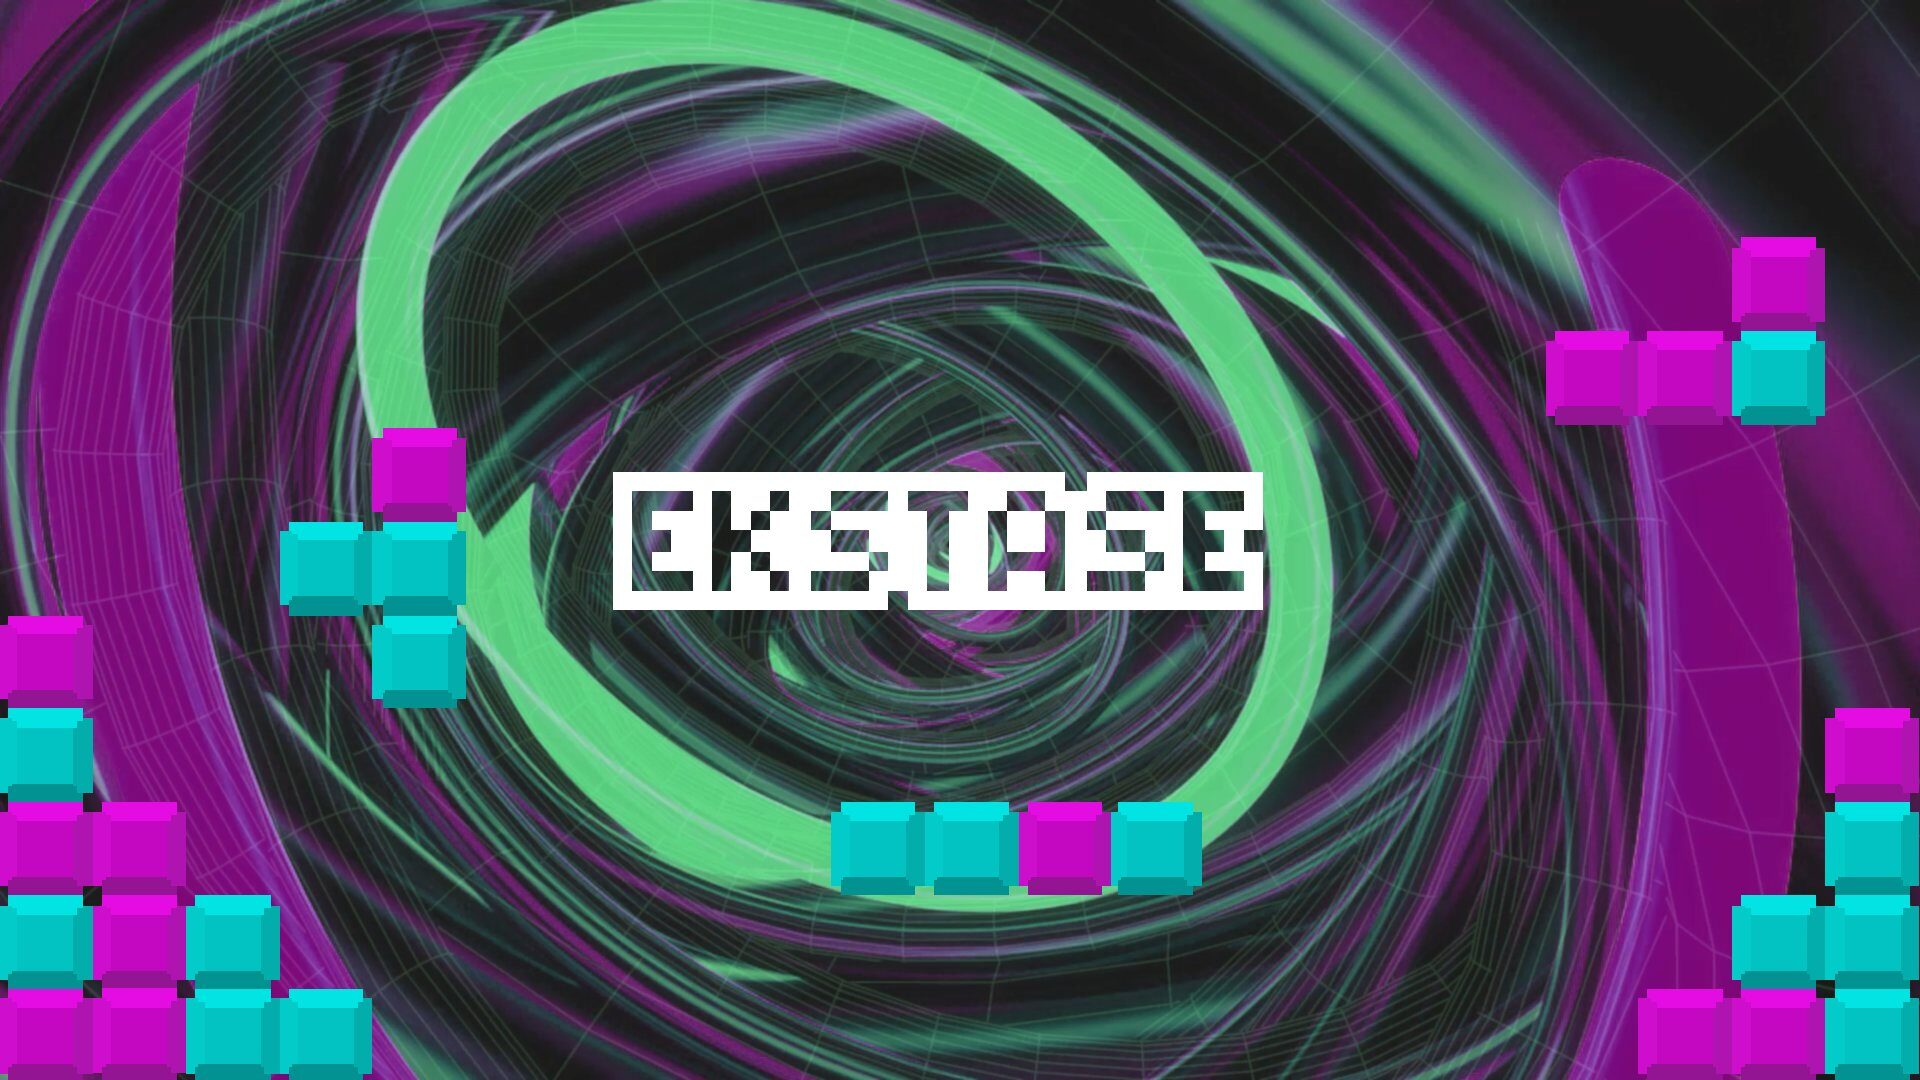 Blocks of blue and magenta color surrounding the word Ekstase